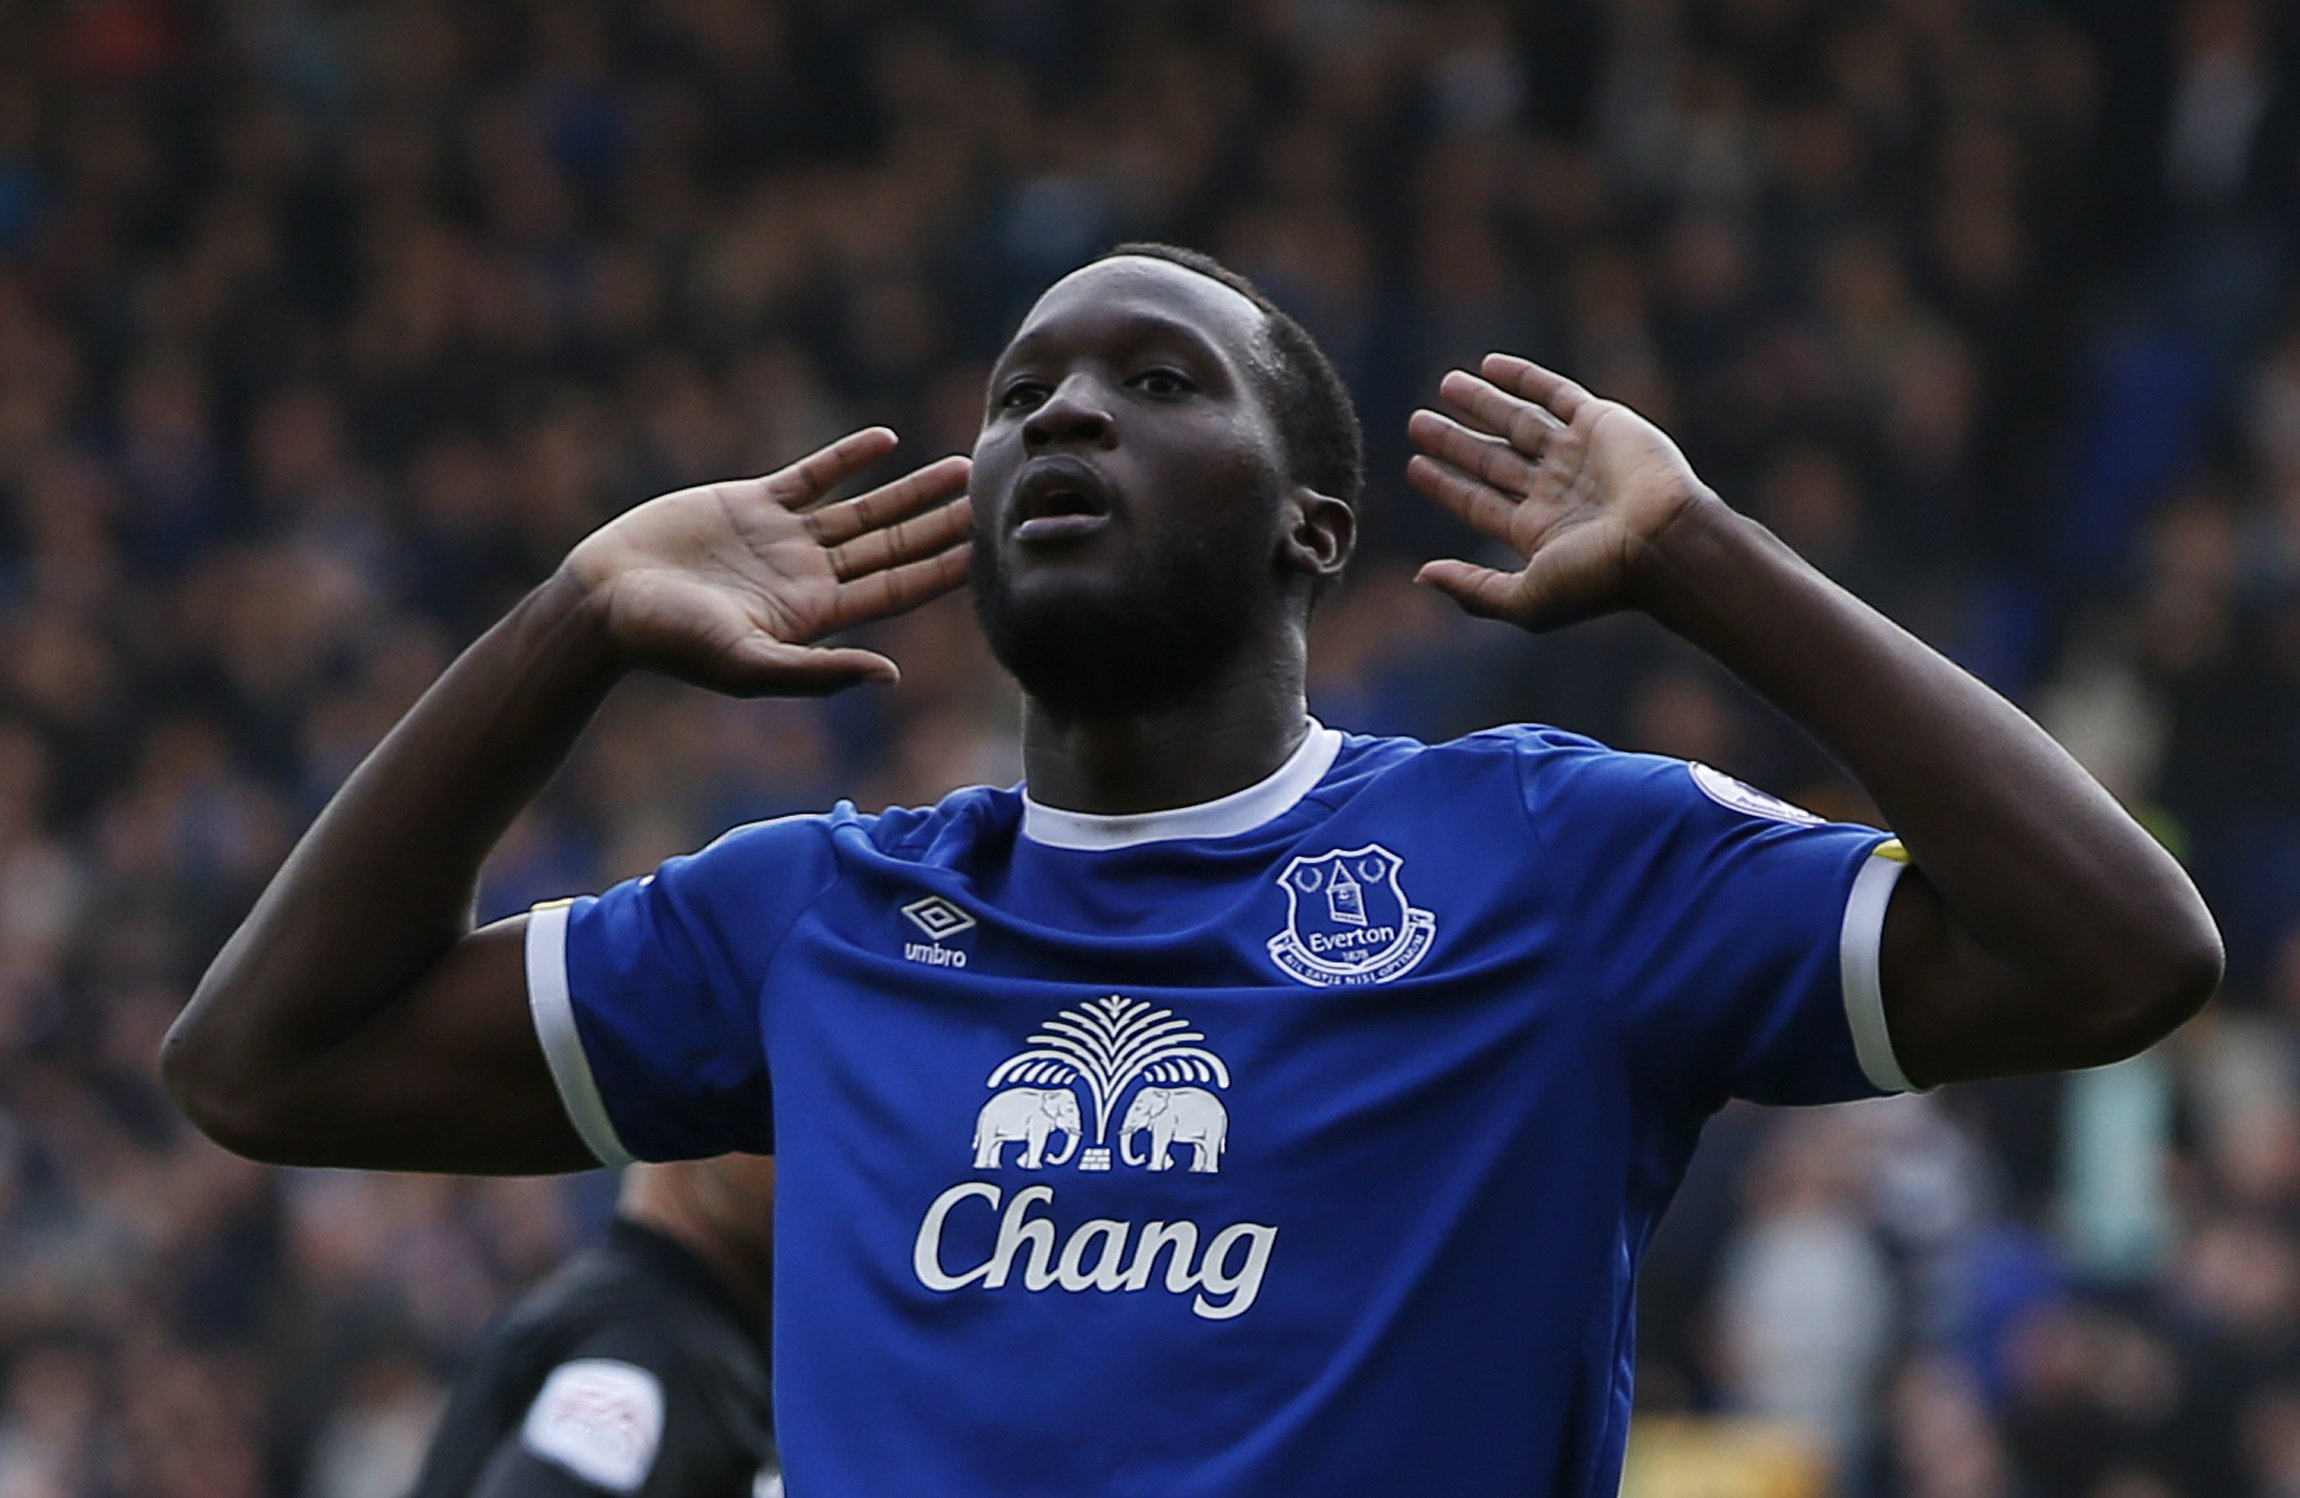 Manchester United confirm deal agreed with Everton to sign Romelu Lukaku